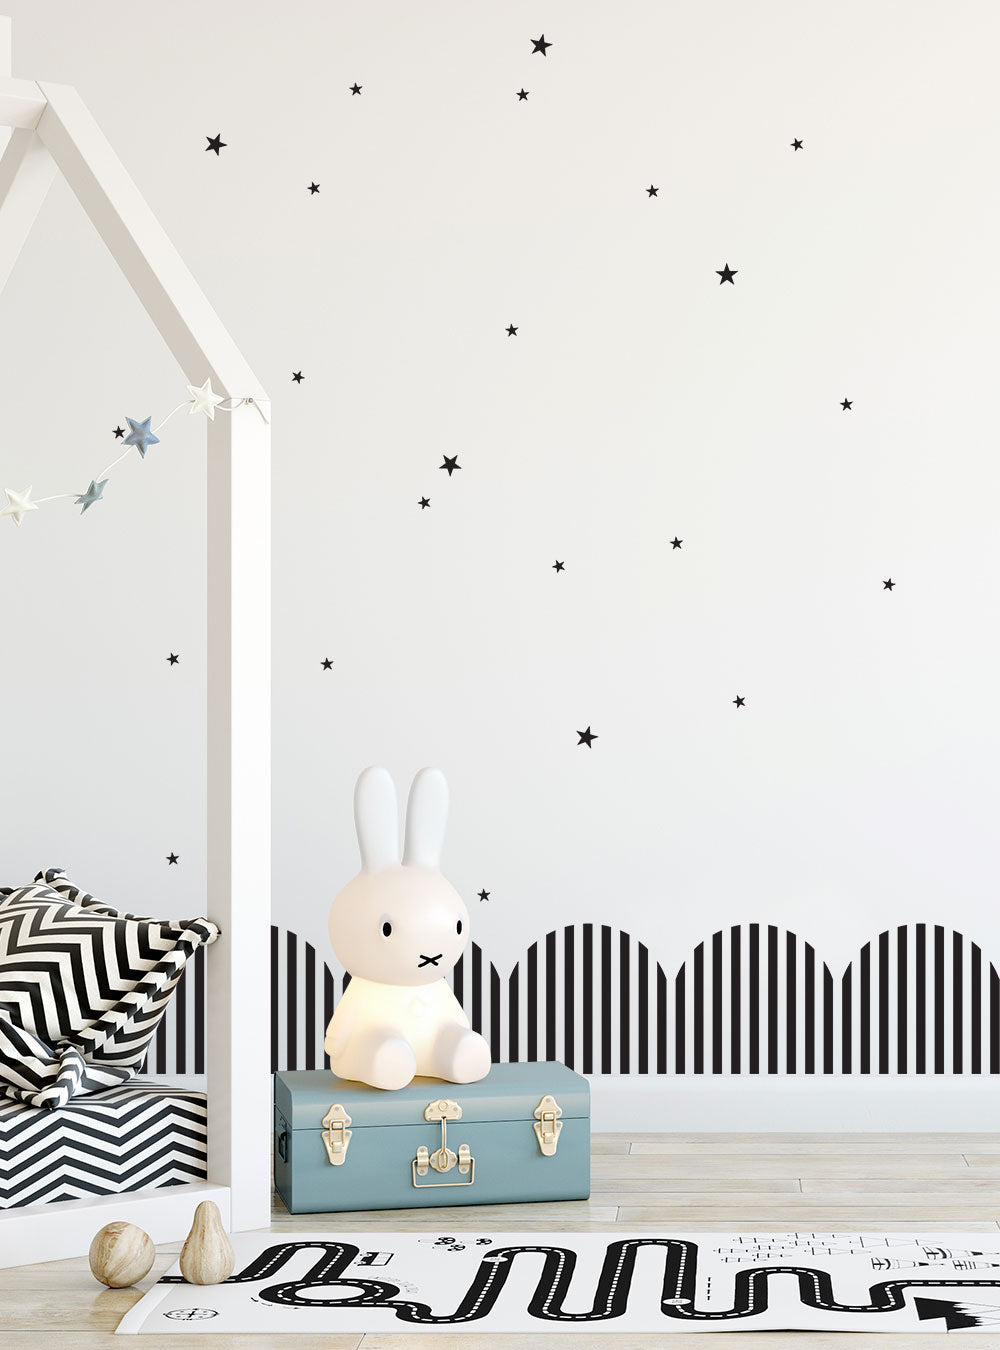 Striped Ribbons and Stars Vinyl Wall Decal